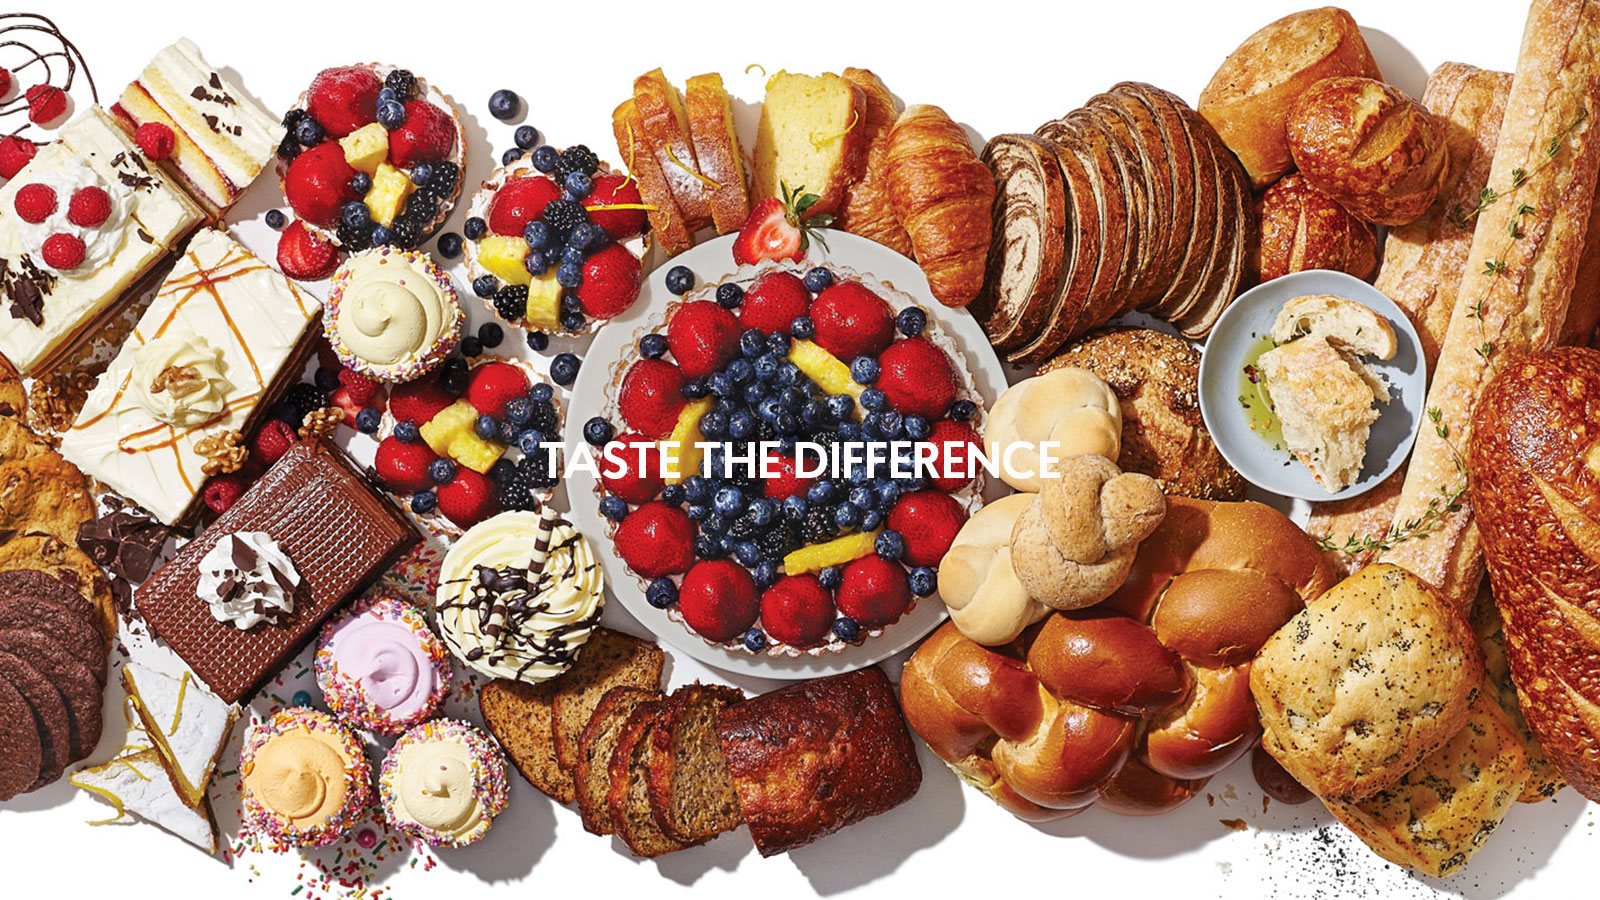 bakery taste-the-difference